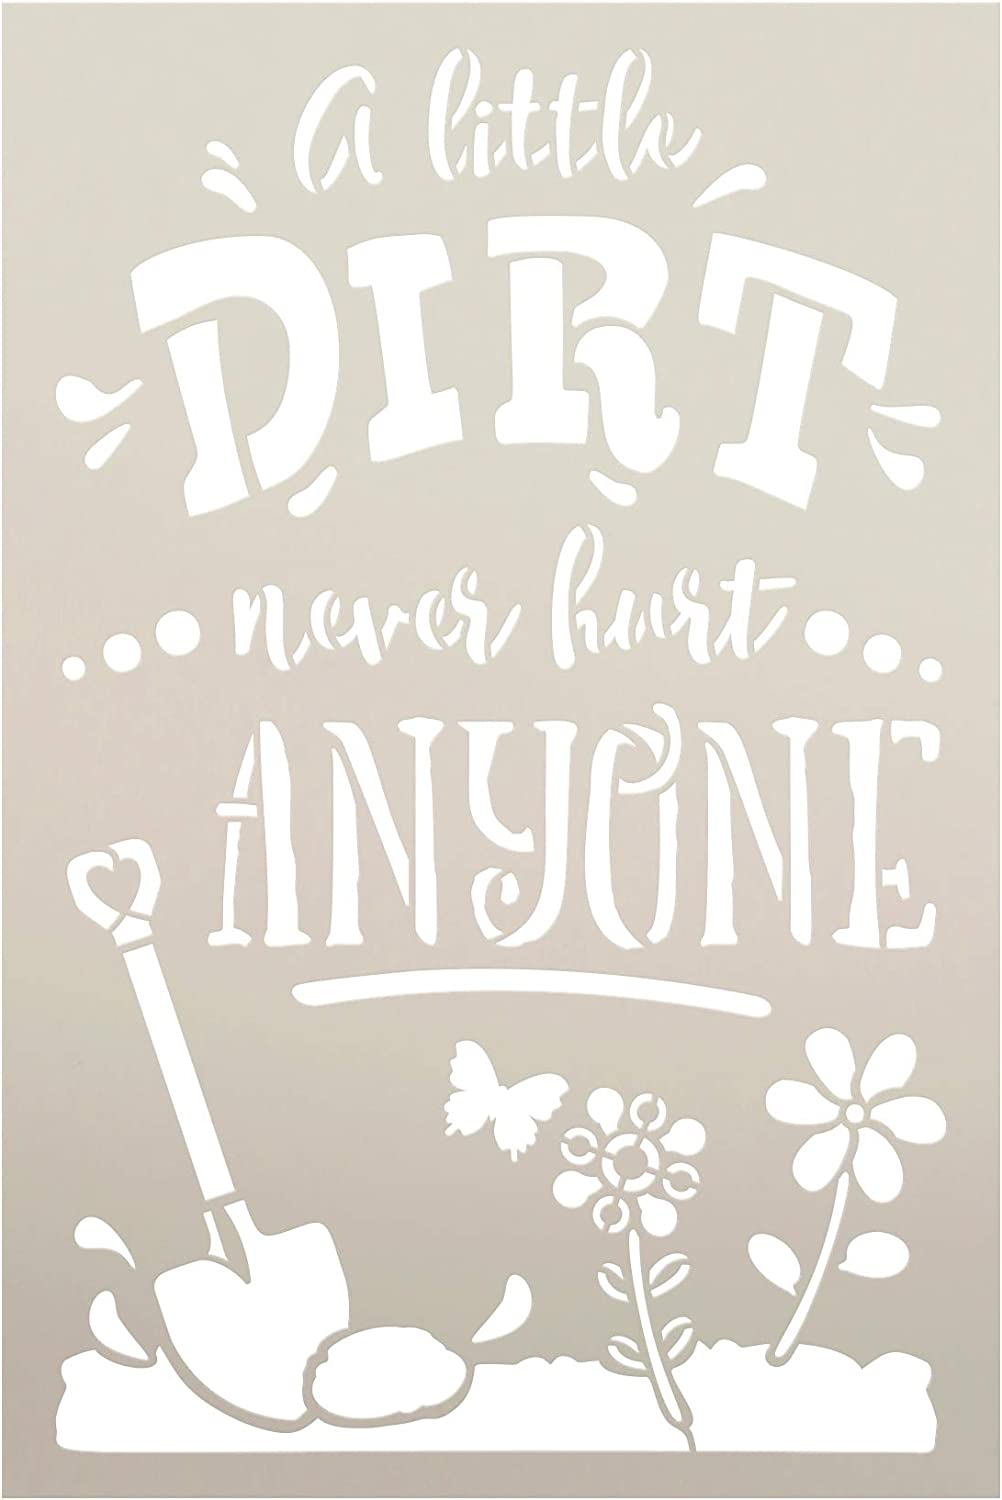 A Little Dirt Never Hurt Stencil by StudioR12 | Reusable Mylar Template | Paint Wood Sign | Craft DIY Home Decor | Cursive Script Nature Gift - Garden - Porch | Select Size (6 inches x 9 inches)